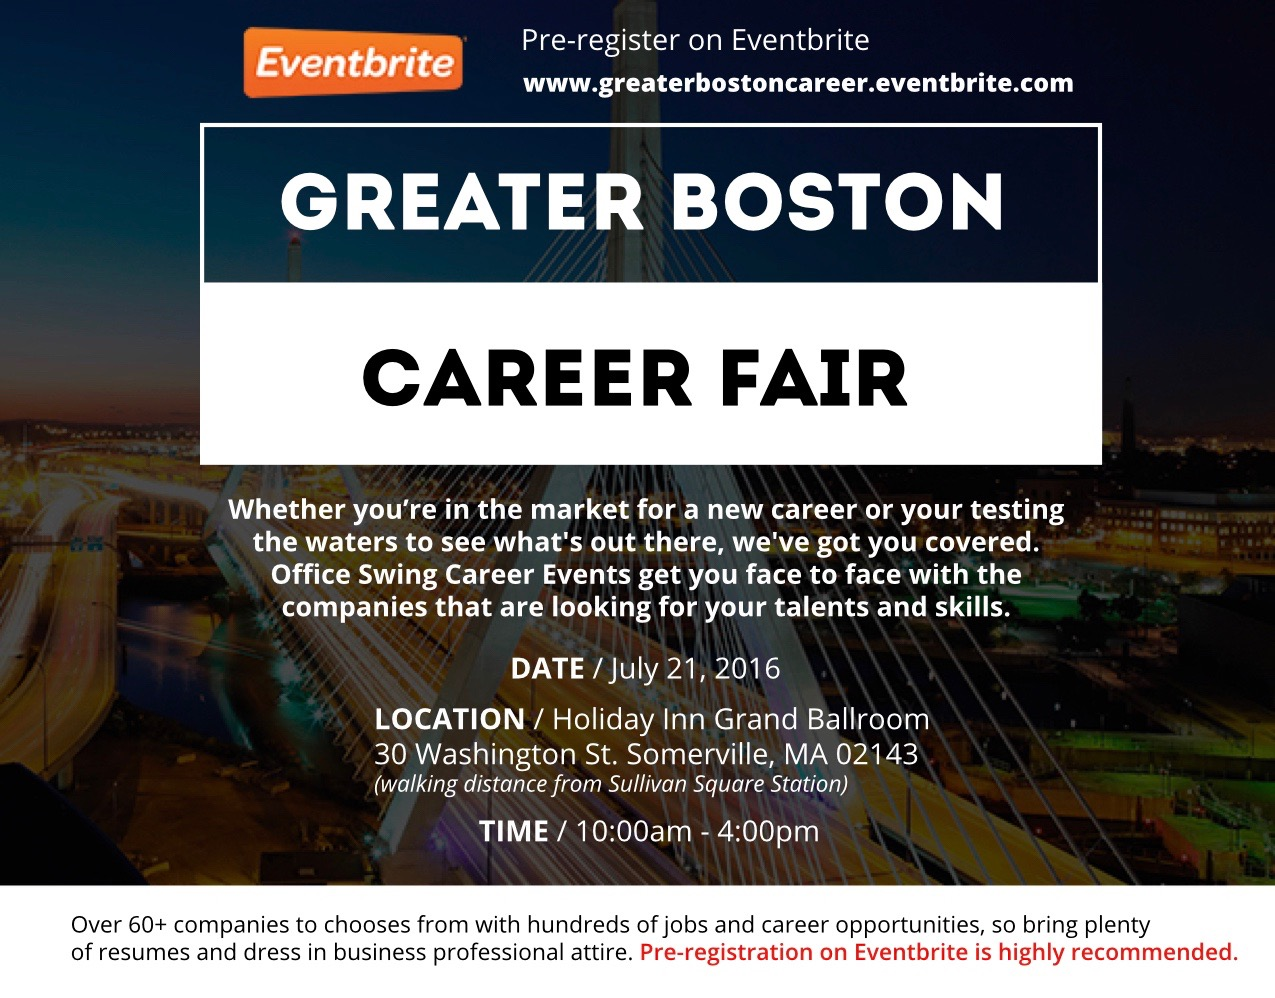 greater boston career fair thursday 21 2016 10 00am to 4 description